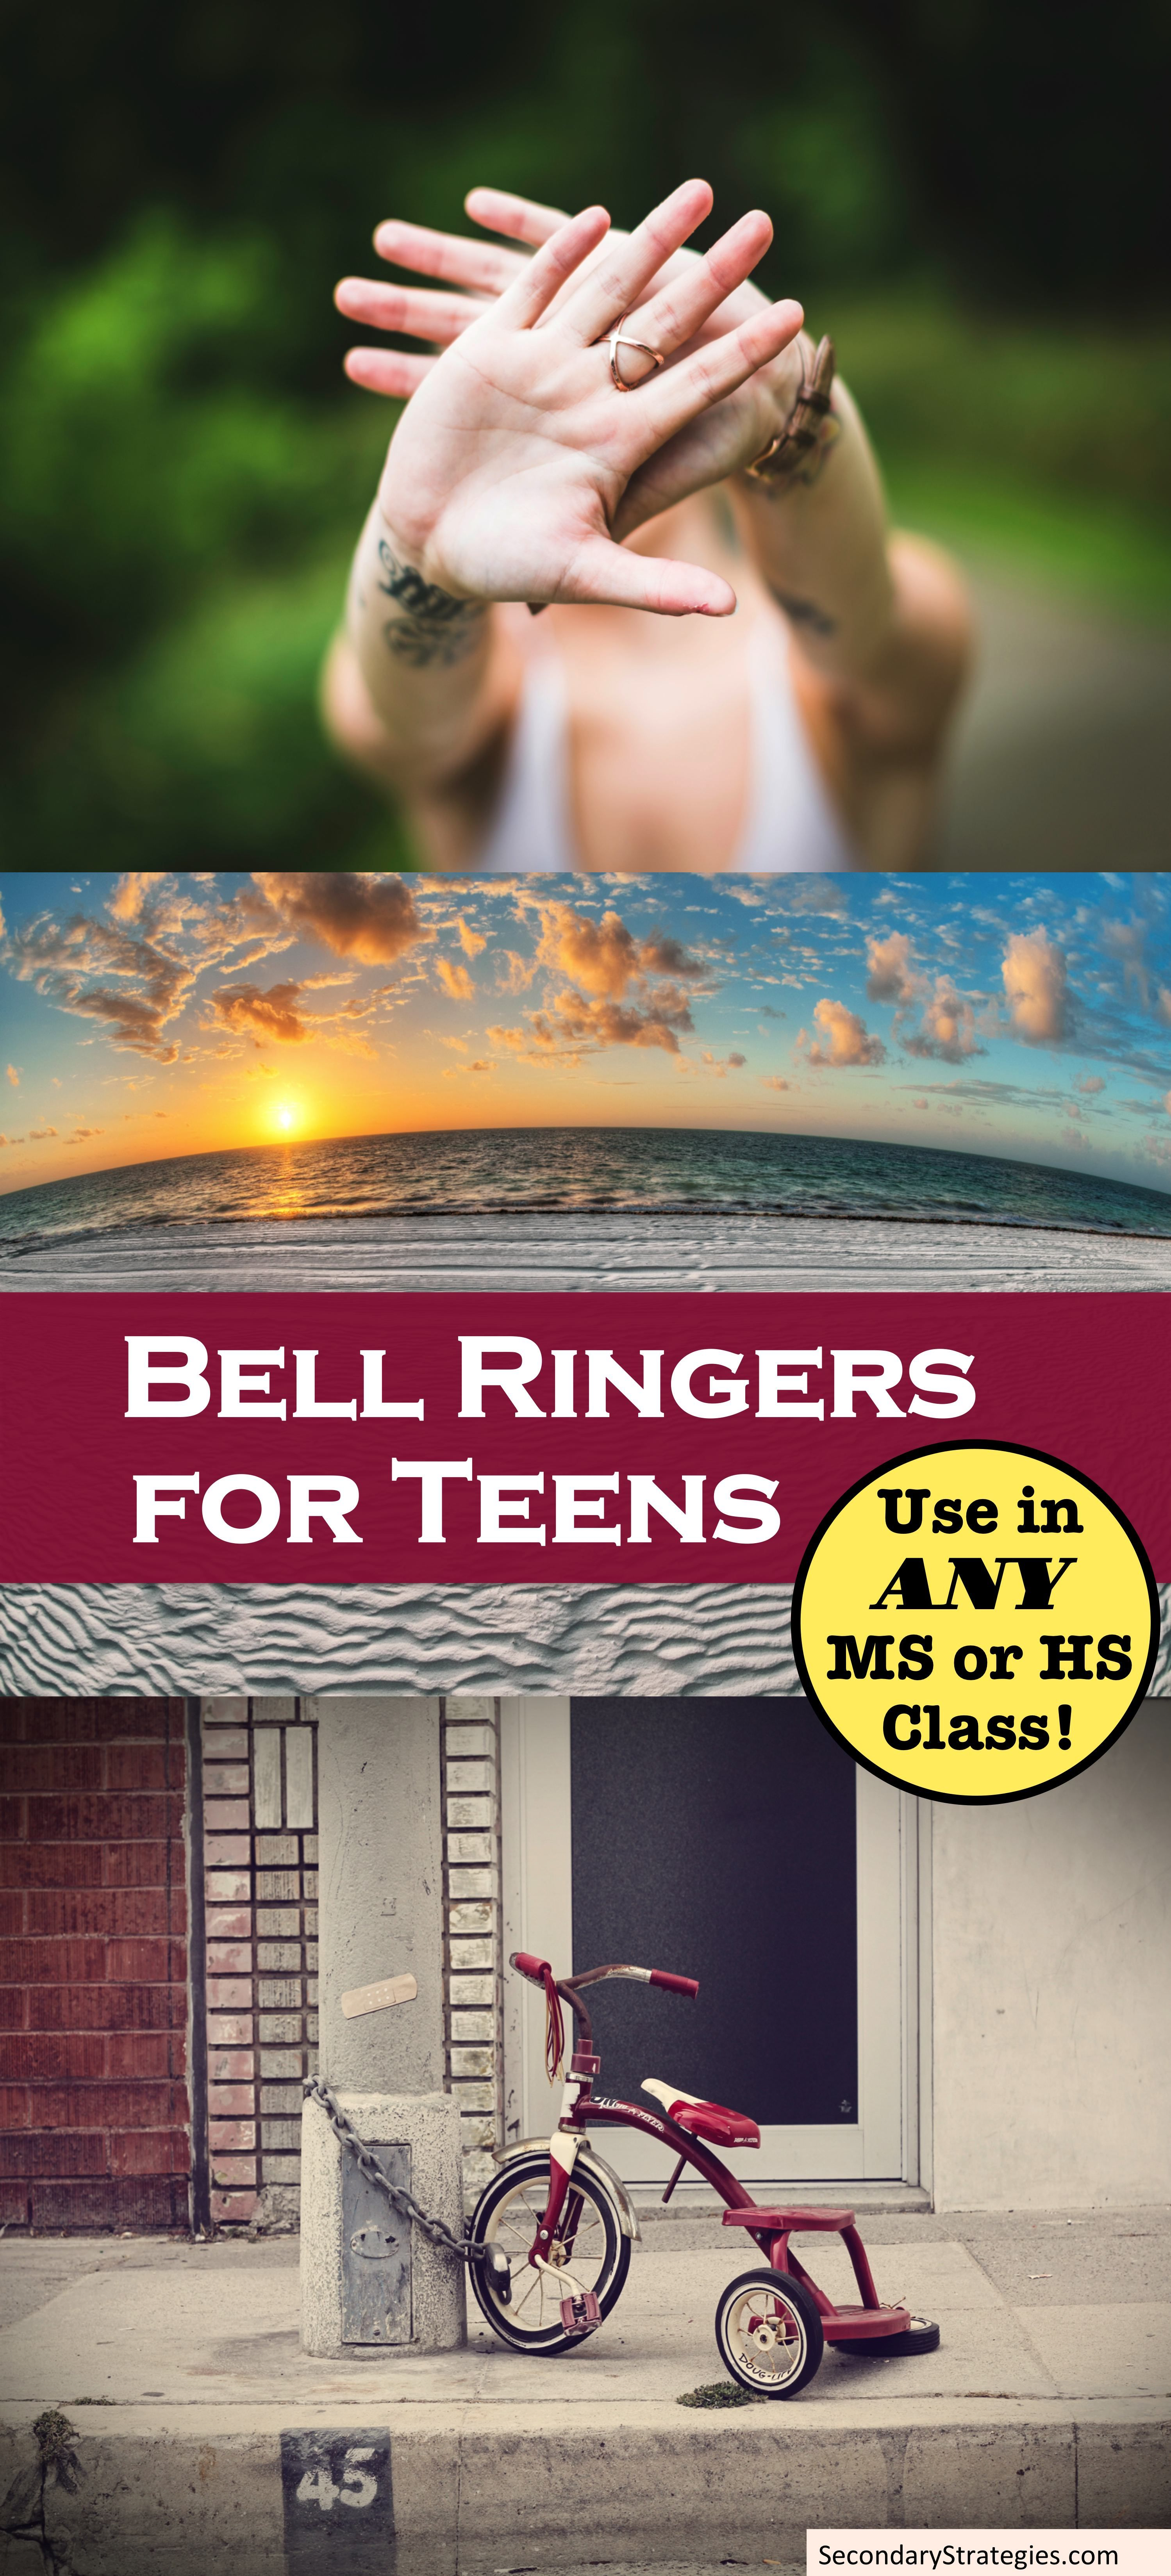 009 Bell Ringers Writing Prompts For Any Middle or High School